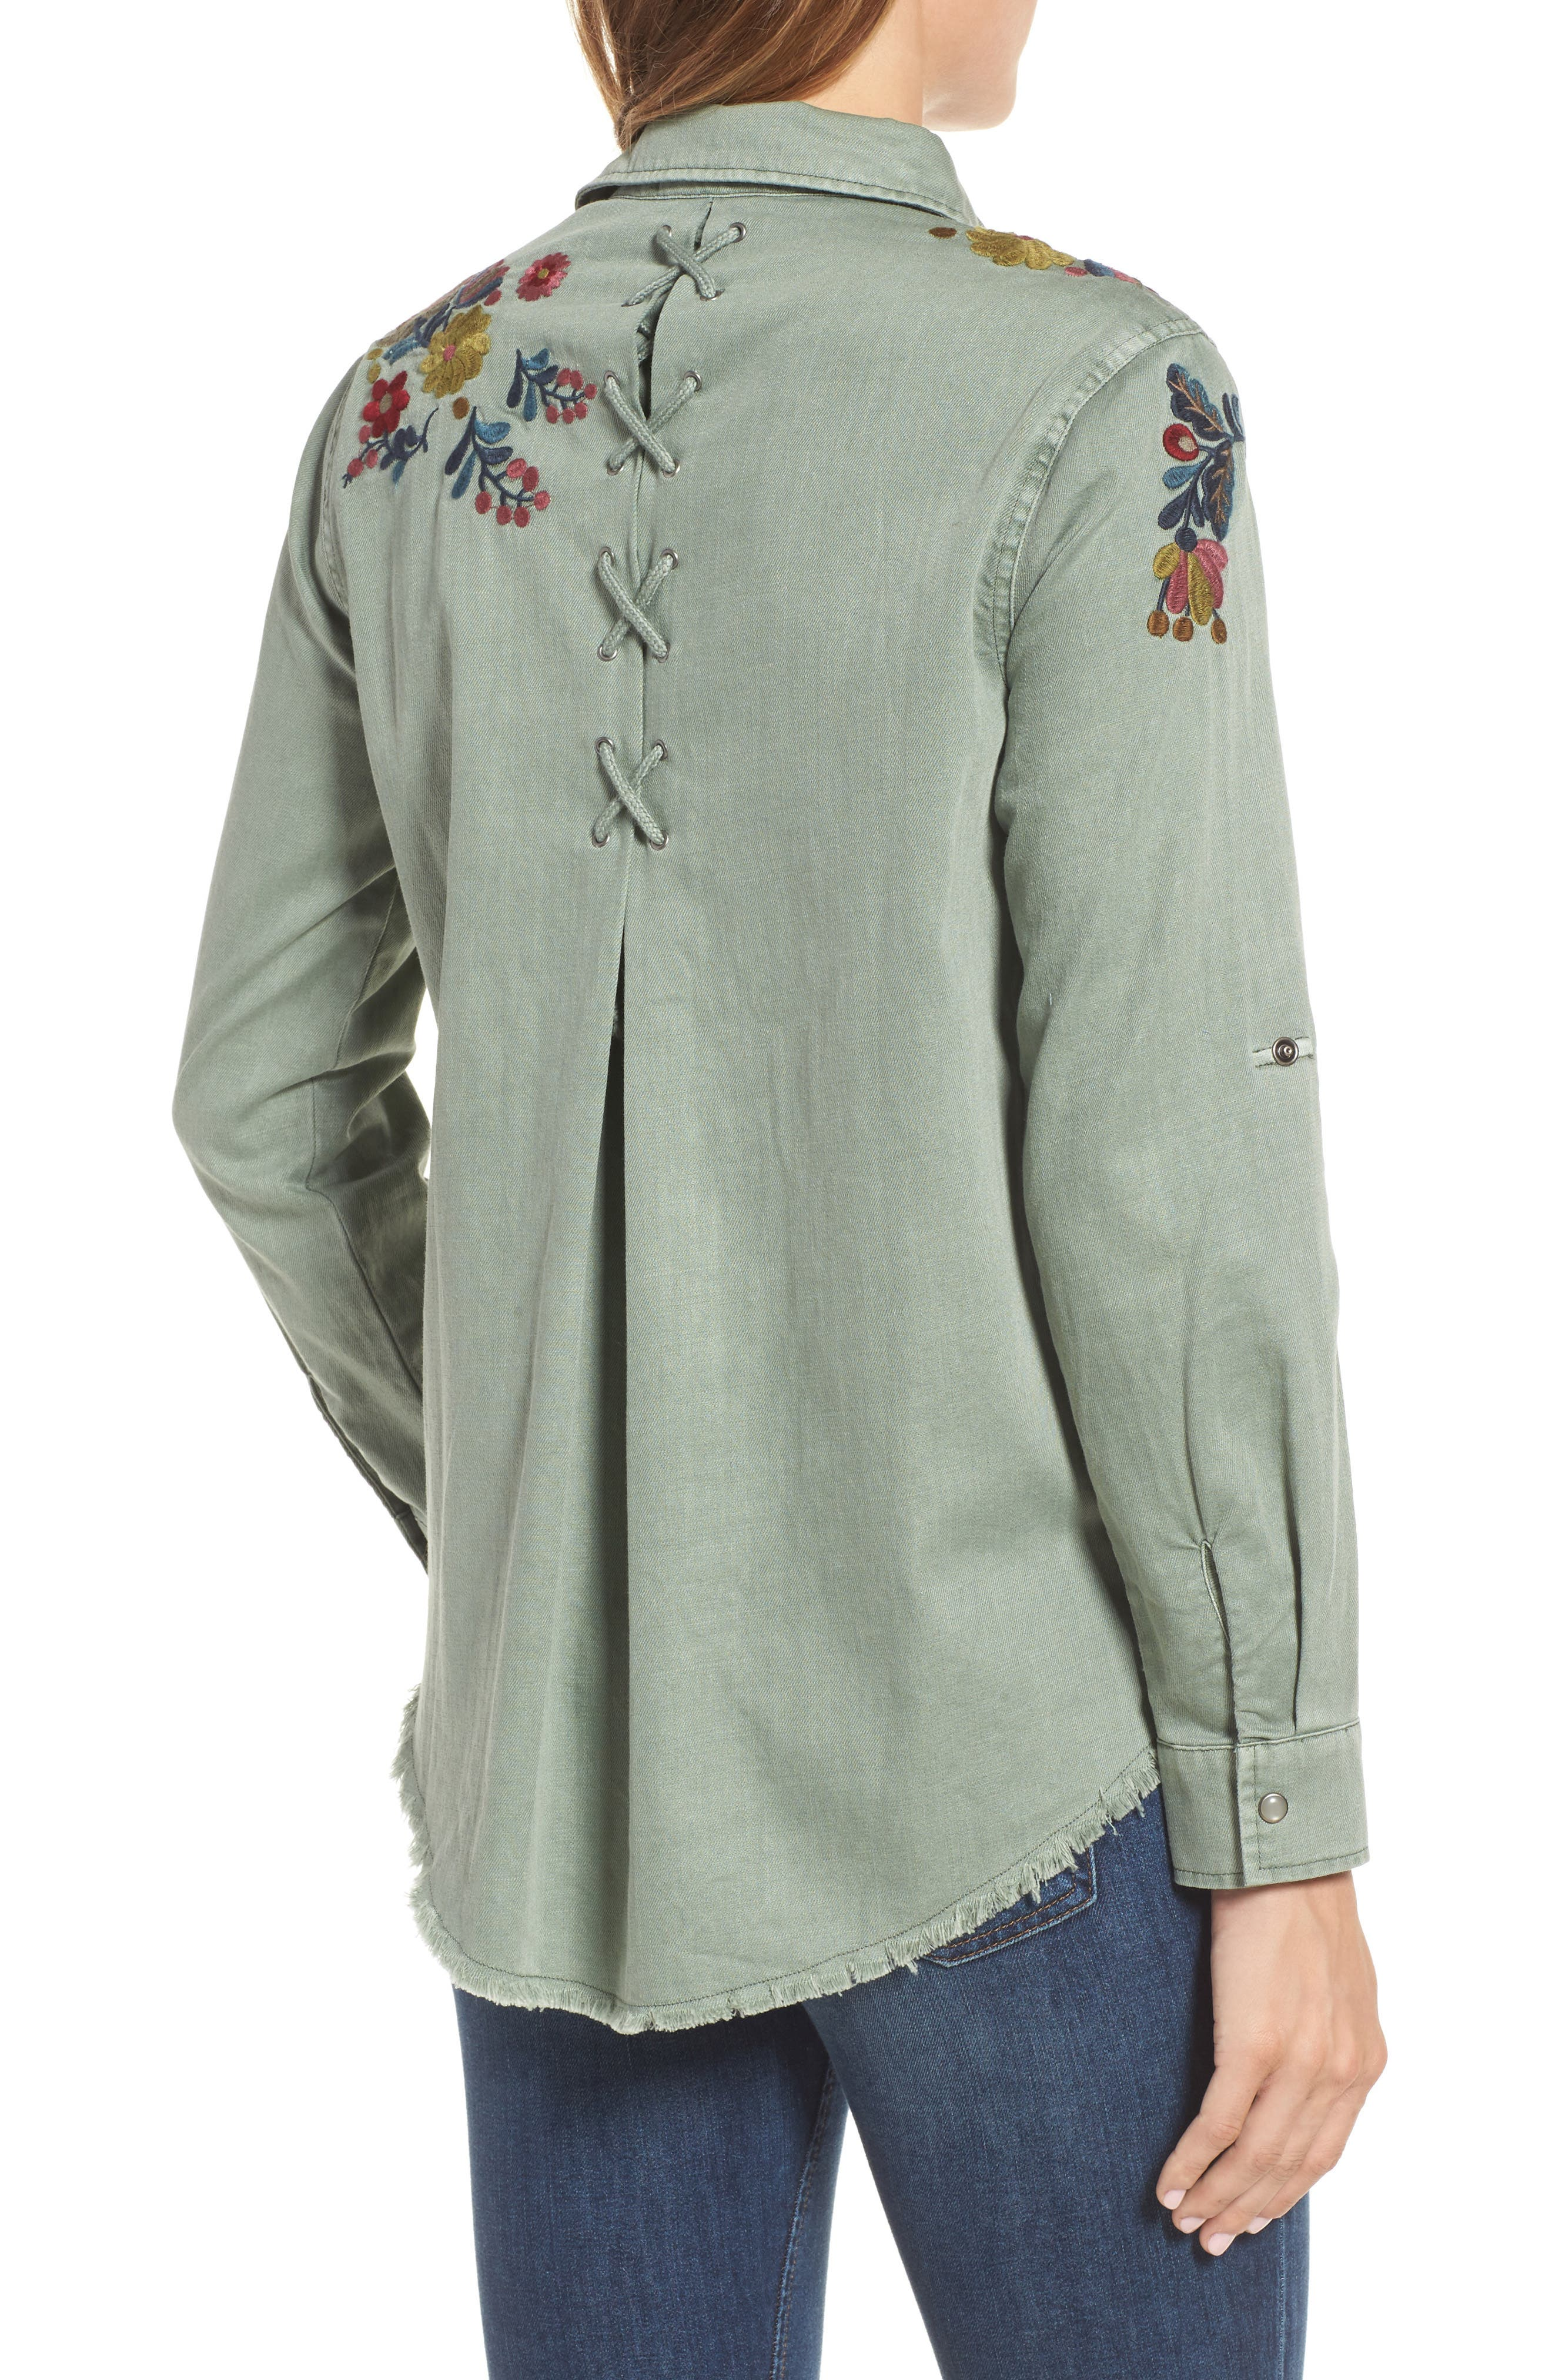 Roll Sleeve Embroidered Shirt,                             Alternate thumbnail 2, color,                             301